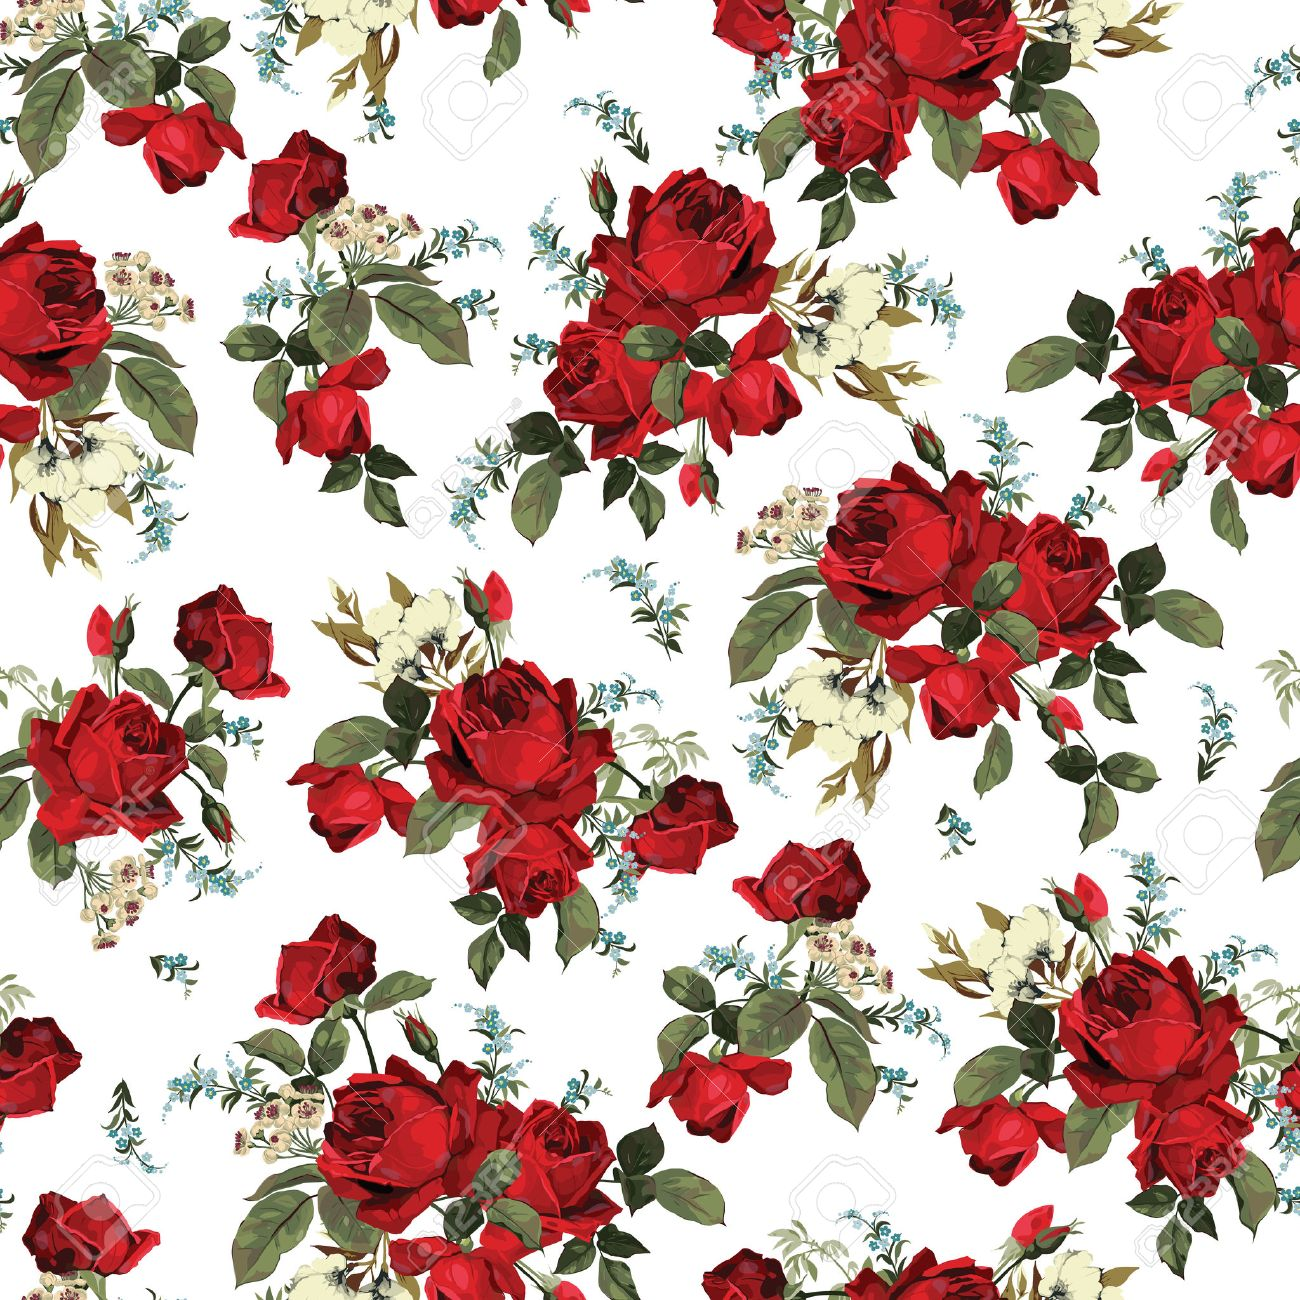 Seamless Floral Pattern With Of Red Roses On White Background